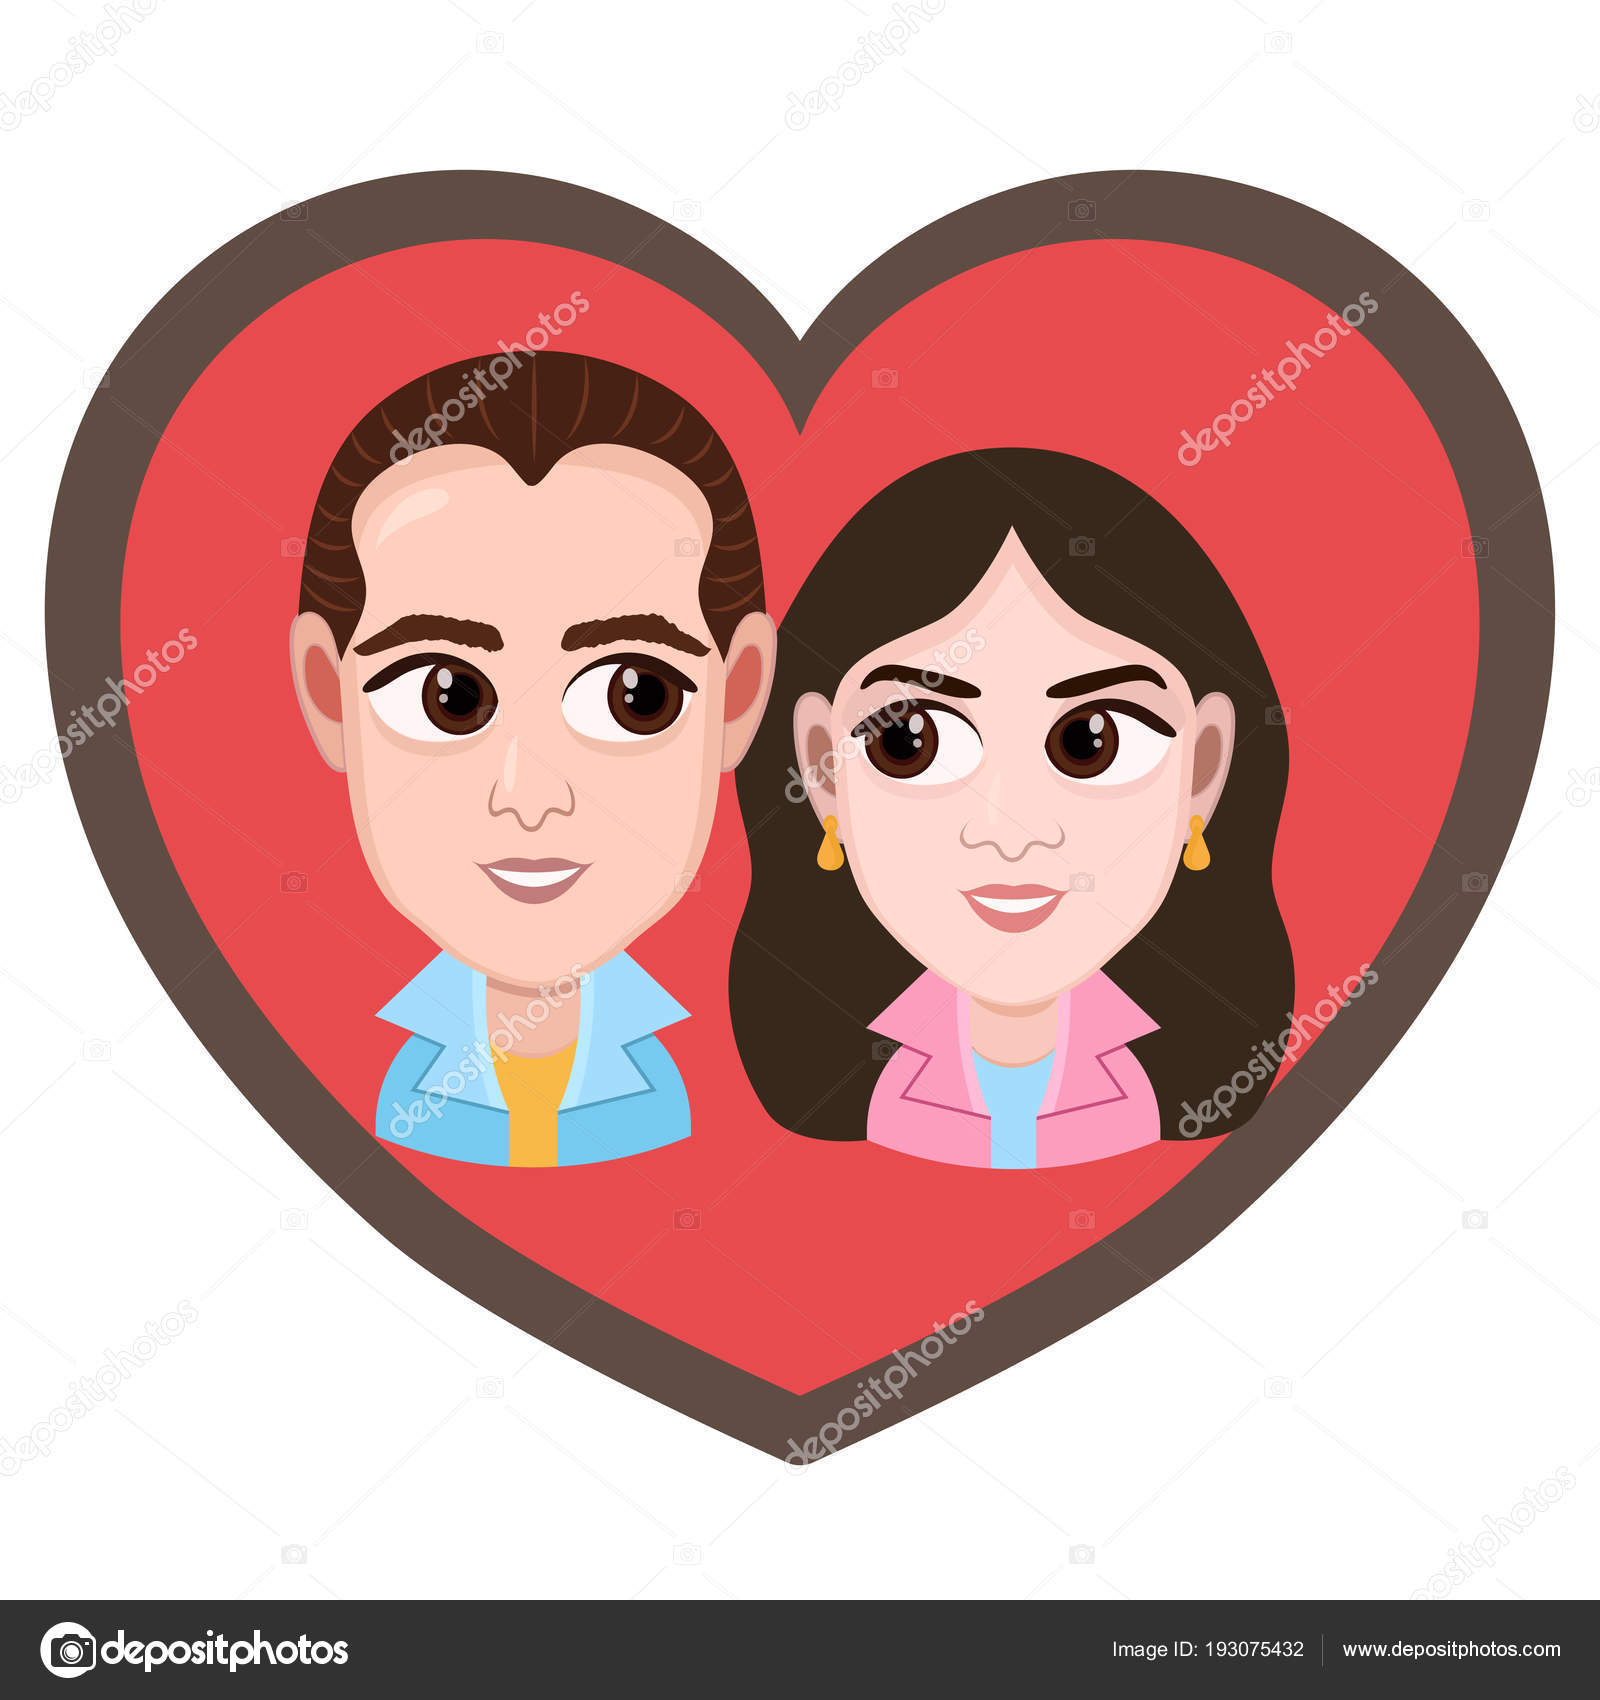 Cartoon Character Vector Drawing Portrait Lovers Couple Boy And Girl Icon Sticker Loving Man And Woman With Big Eyes Looking At Each Other In Heart